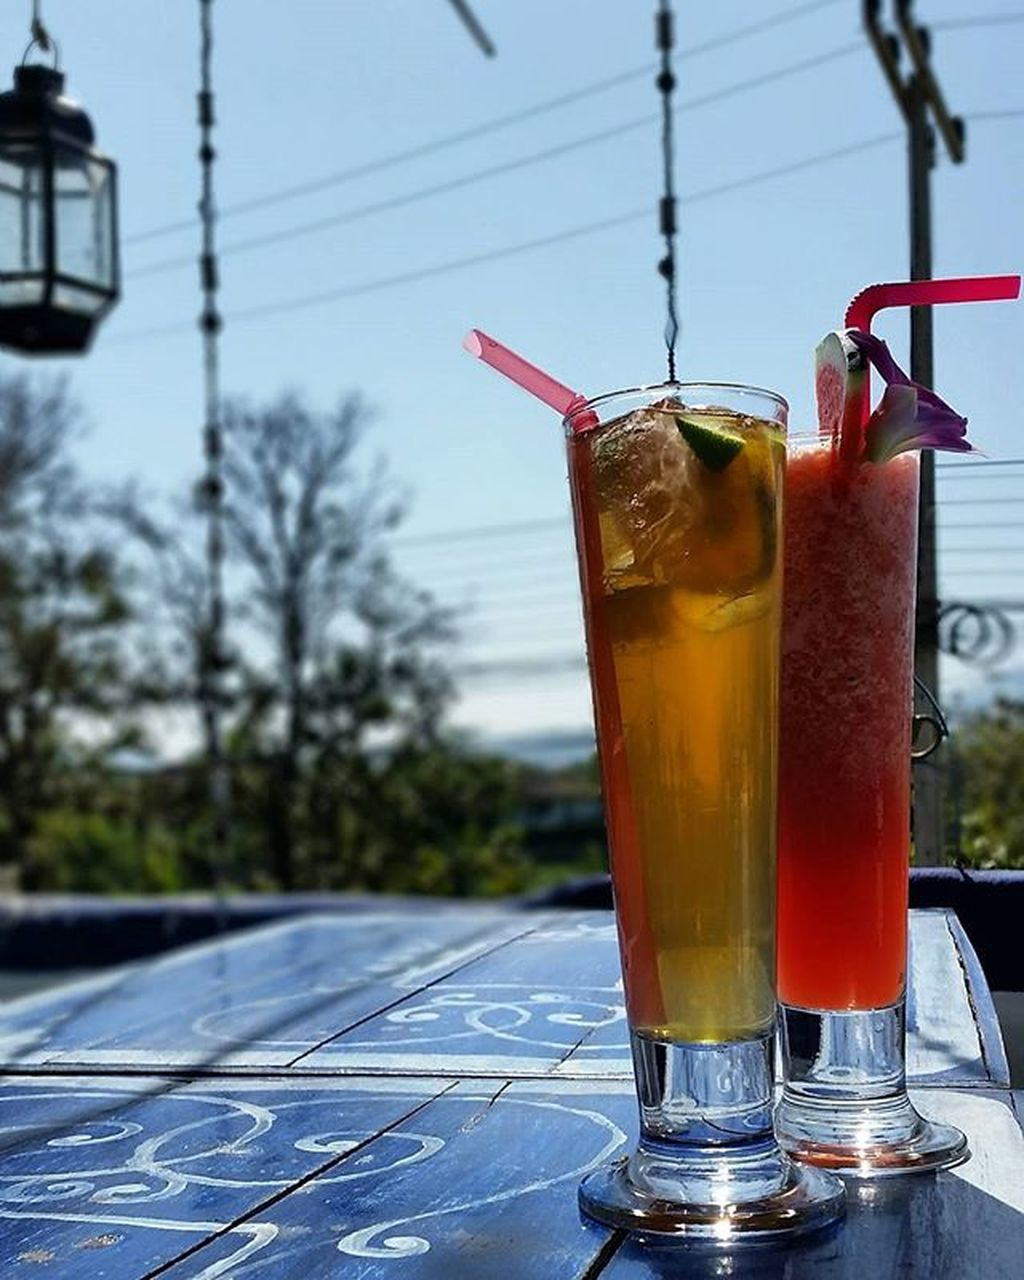 drink, drinking straw, refreshment, drinking glass, focus on foreground, food and drink, cocktail, cold temperature, table, close-up, outdoors, no people, day, alcohol, sky, tree, freshness